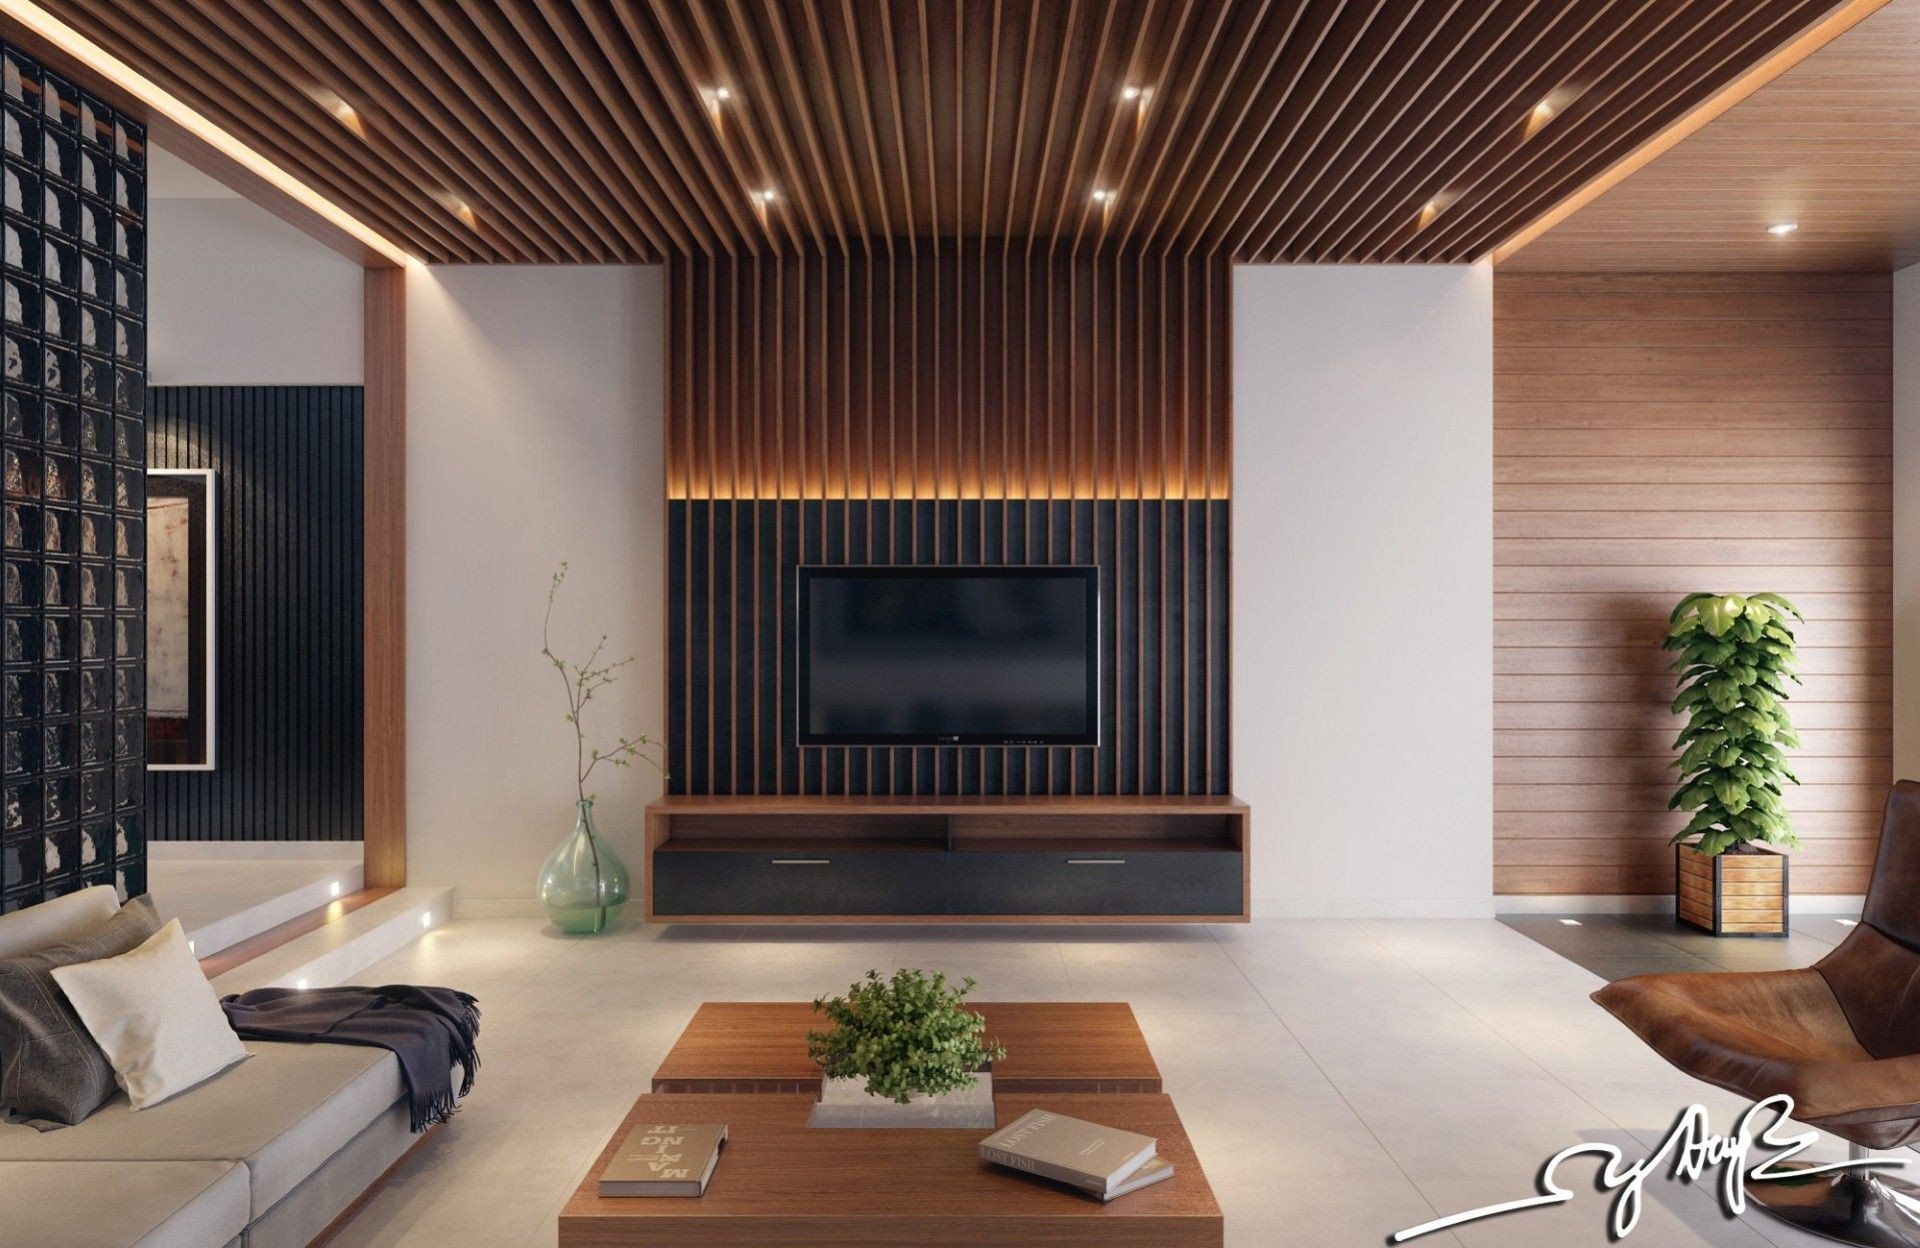 Small Living Room Ideas With Tv Best Of 25 And Designs Living Room Ideas Tv Wooden Wall Design Wood Interior Design Wood Wall Design